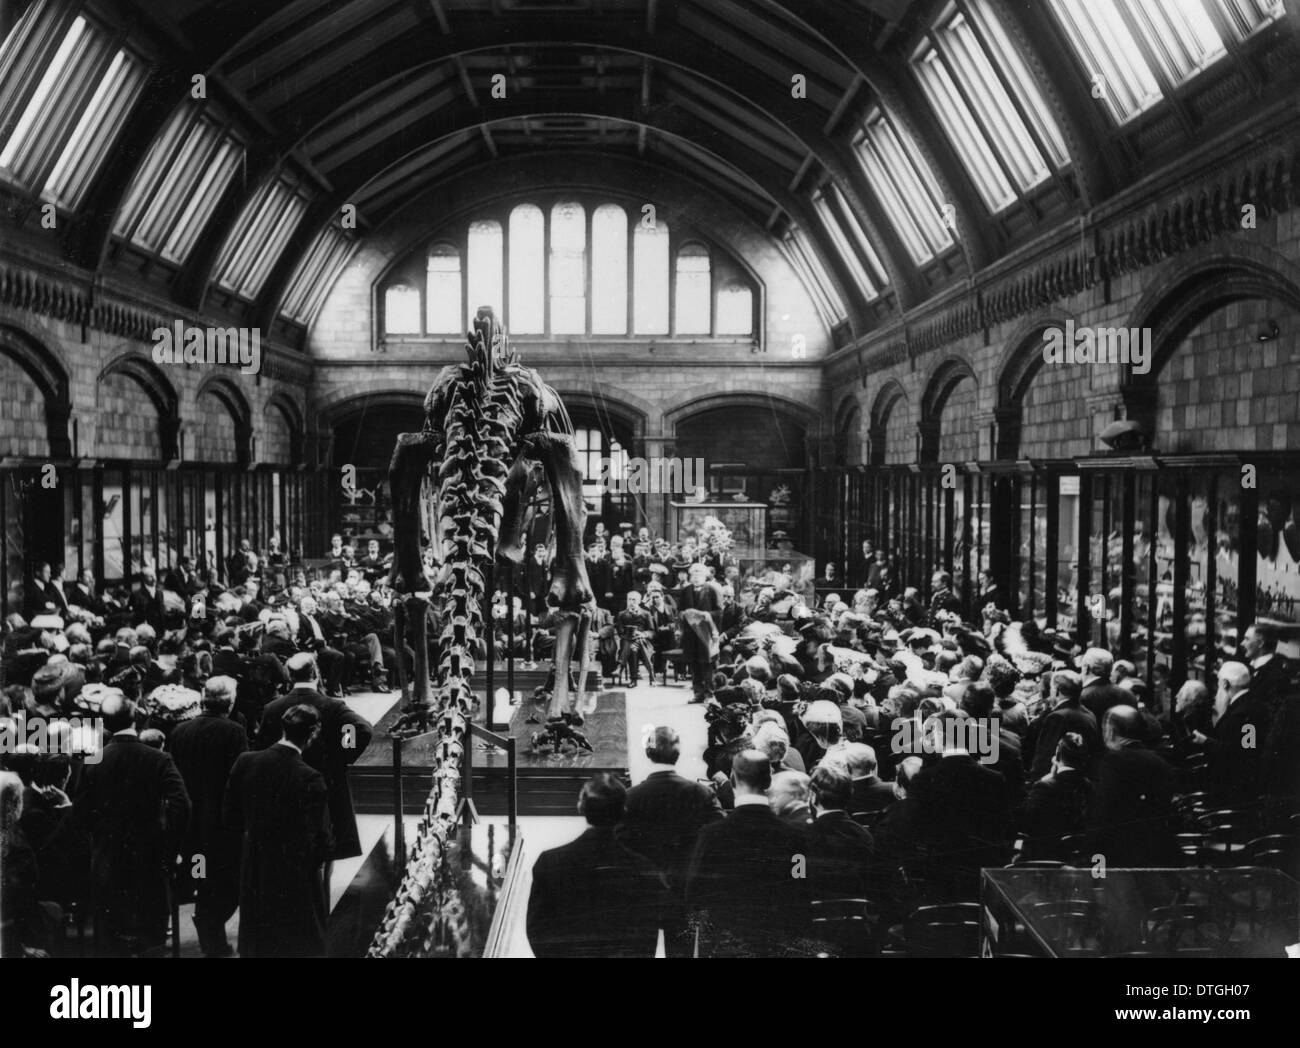 Diplodocus carnegii, presented by Mr Andrew Carnegie and unveiled by Lord Avebury. 12 May, 1905. - Stock Image